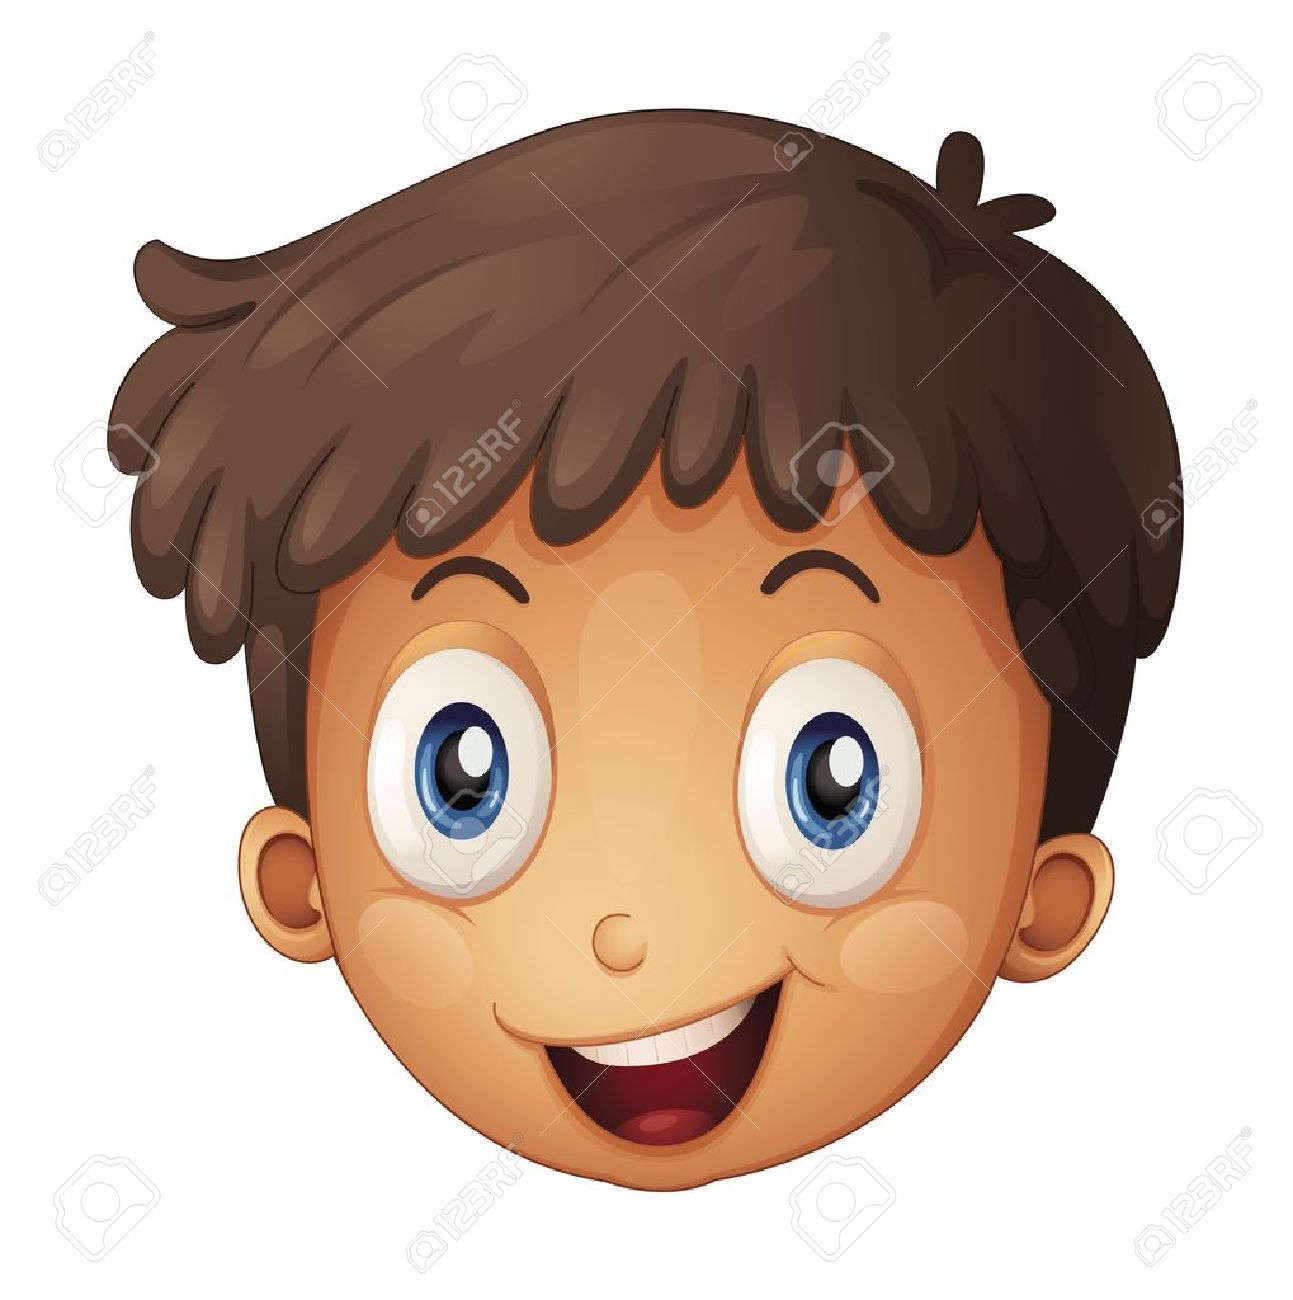 Illustration Of A Face Of A Boy On A White Background Royalty Free.